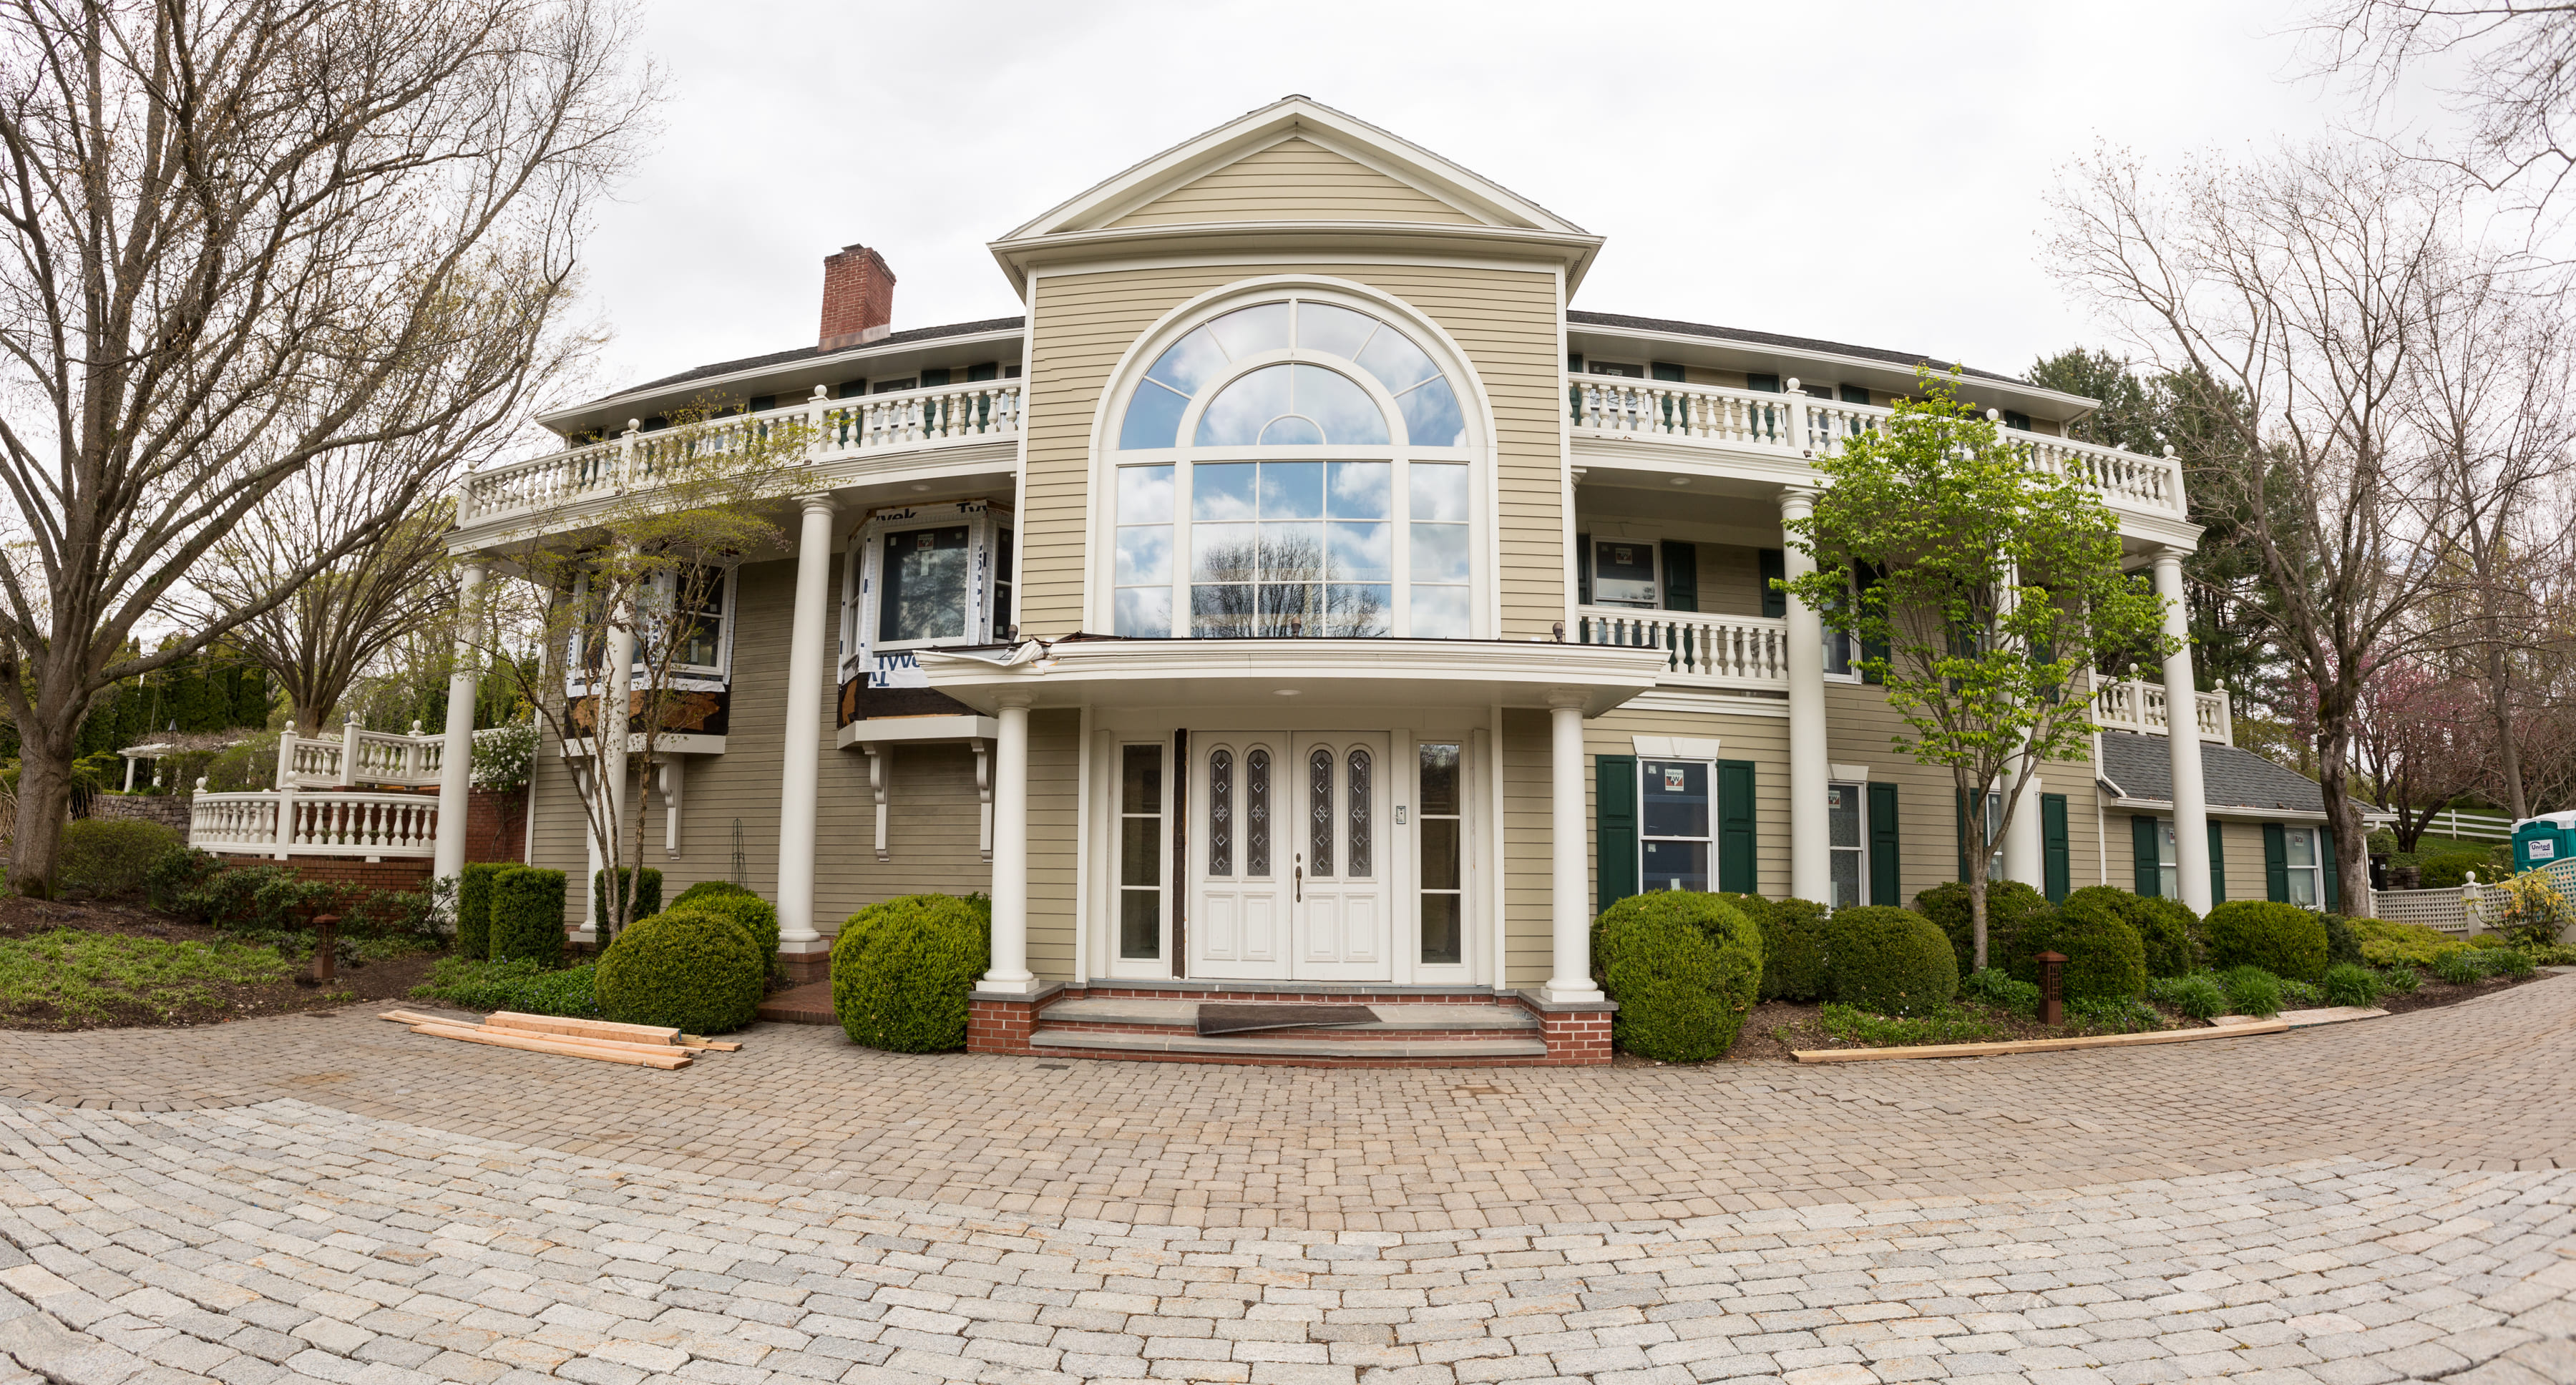 custom home with large window in potterstown nj by GTG custom home builders